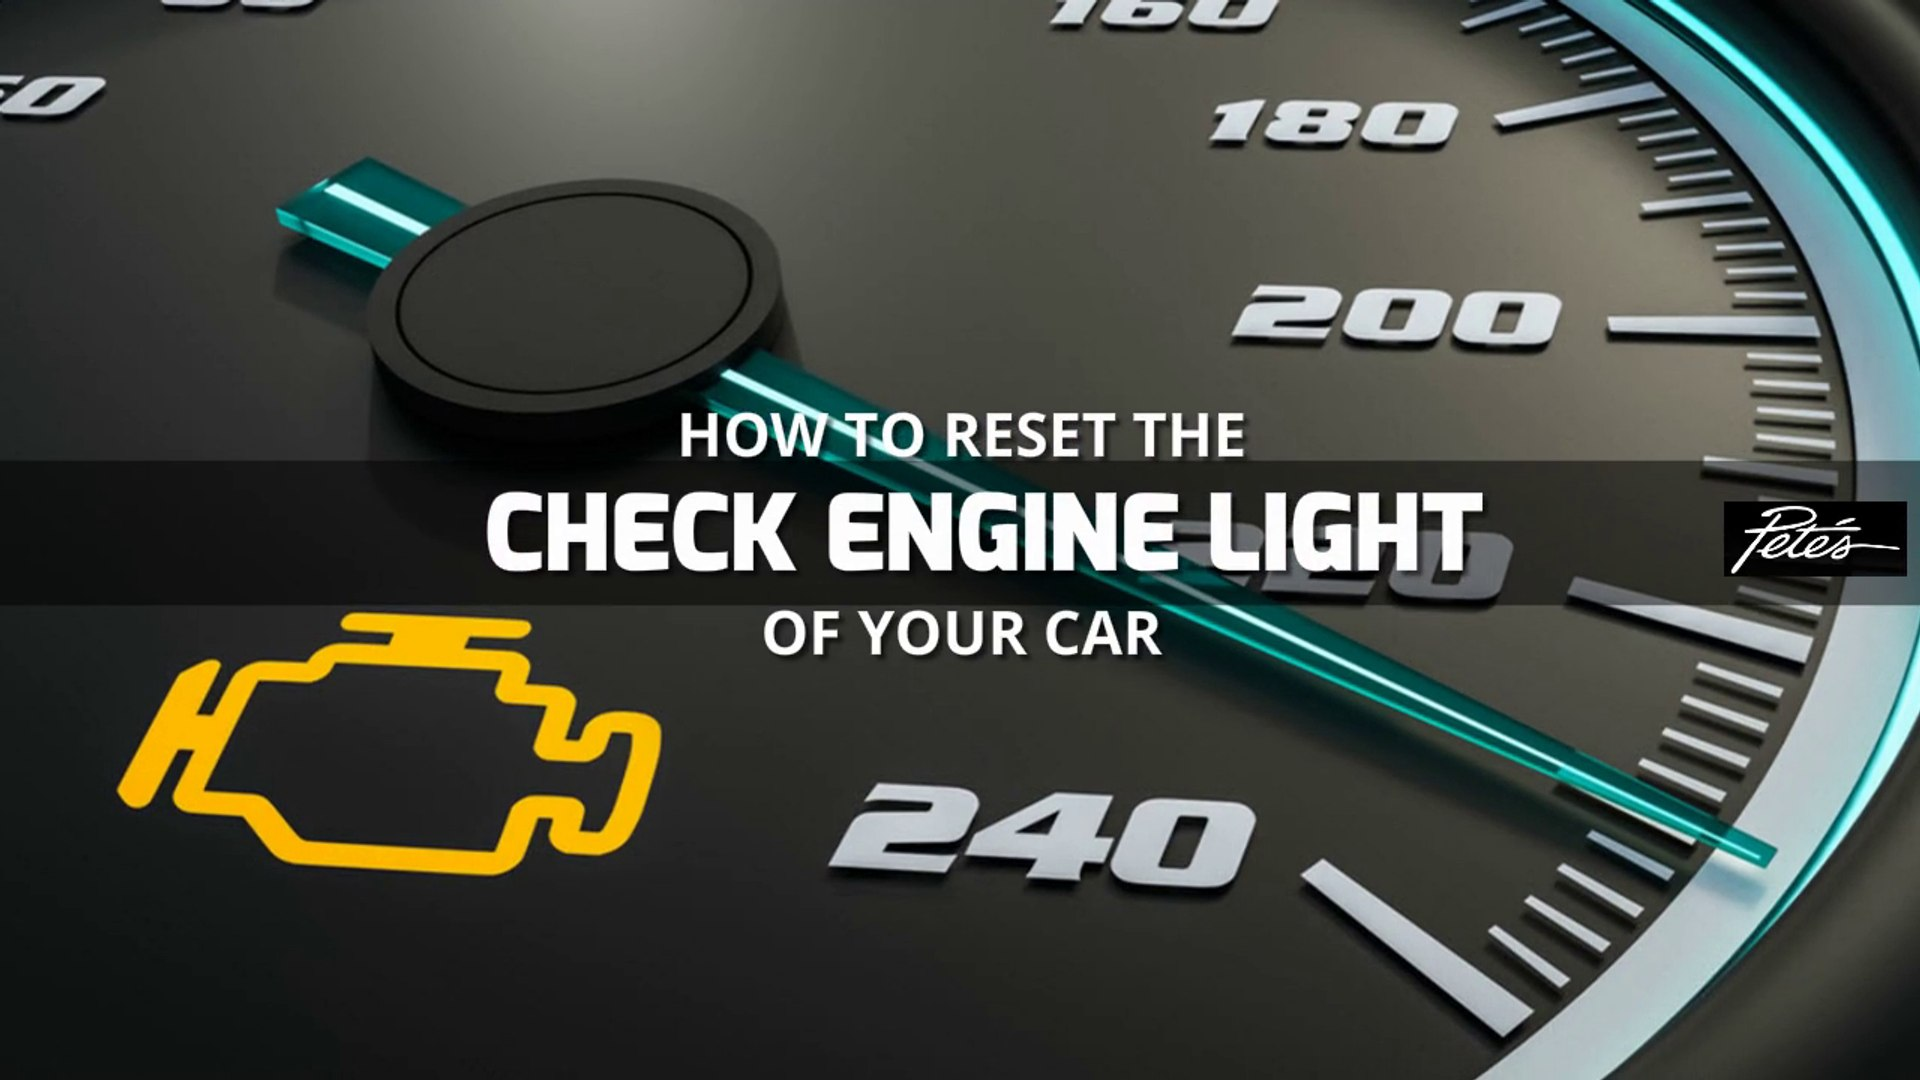 How To Reset Check Engine Light >> How To Reset The Check Engine Light Of Your Car